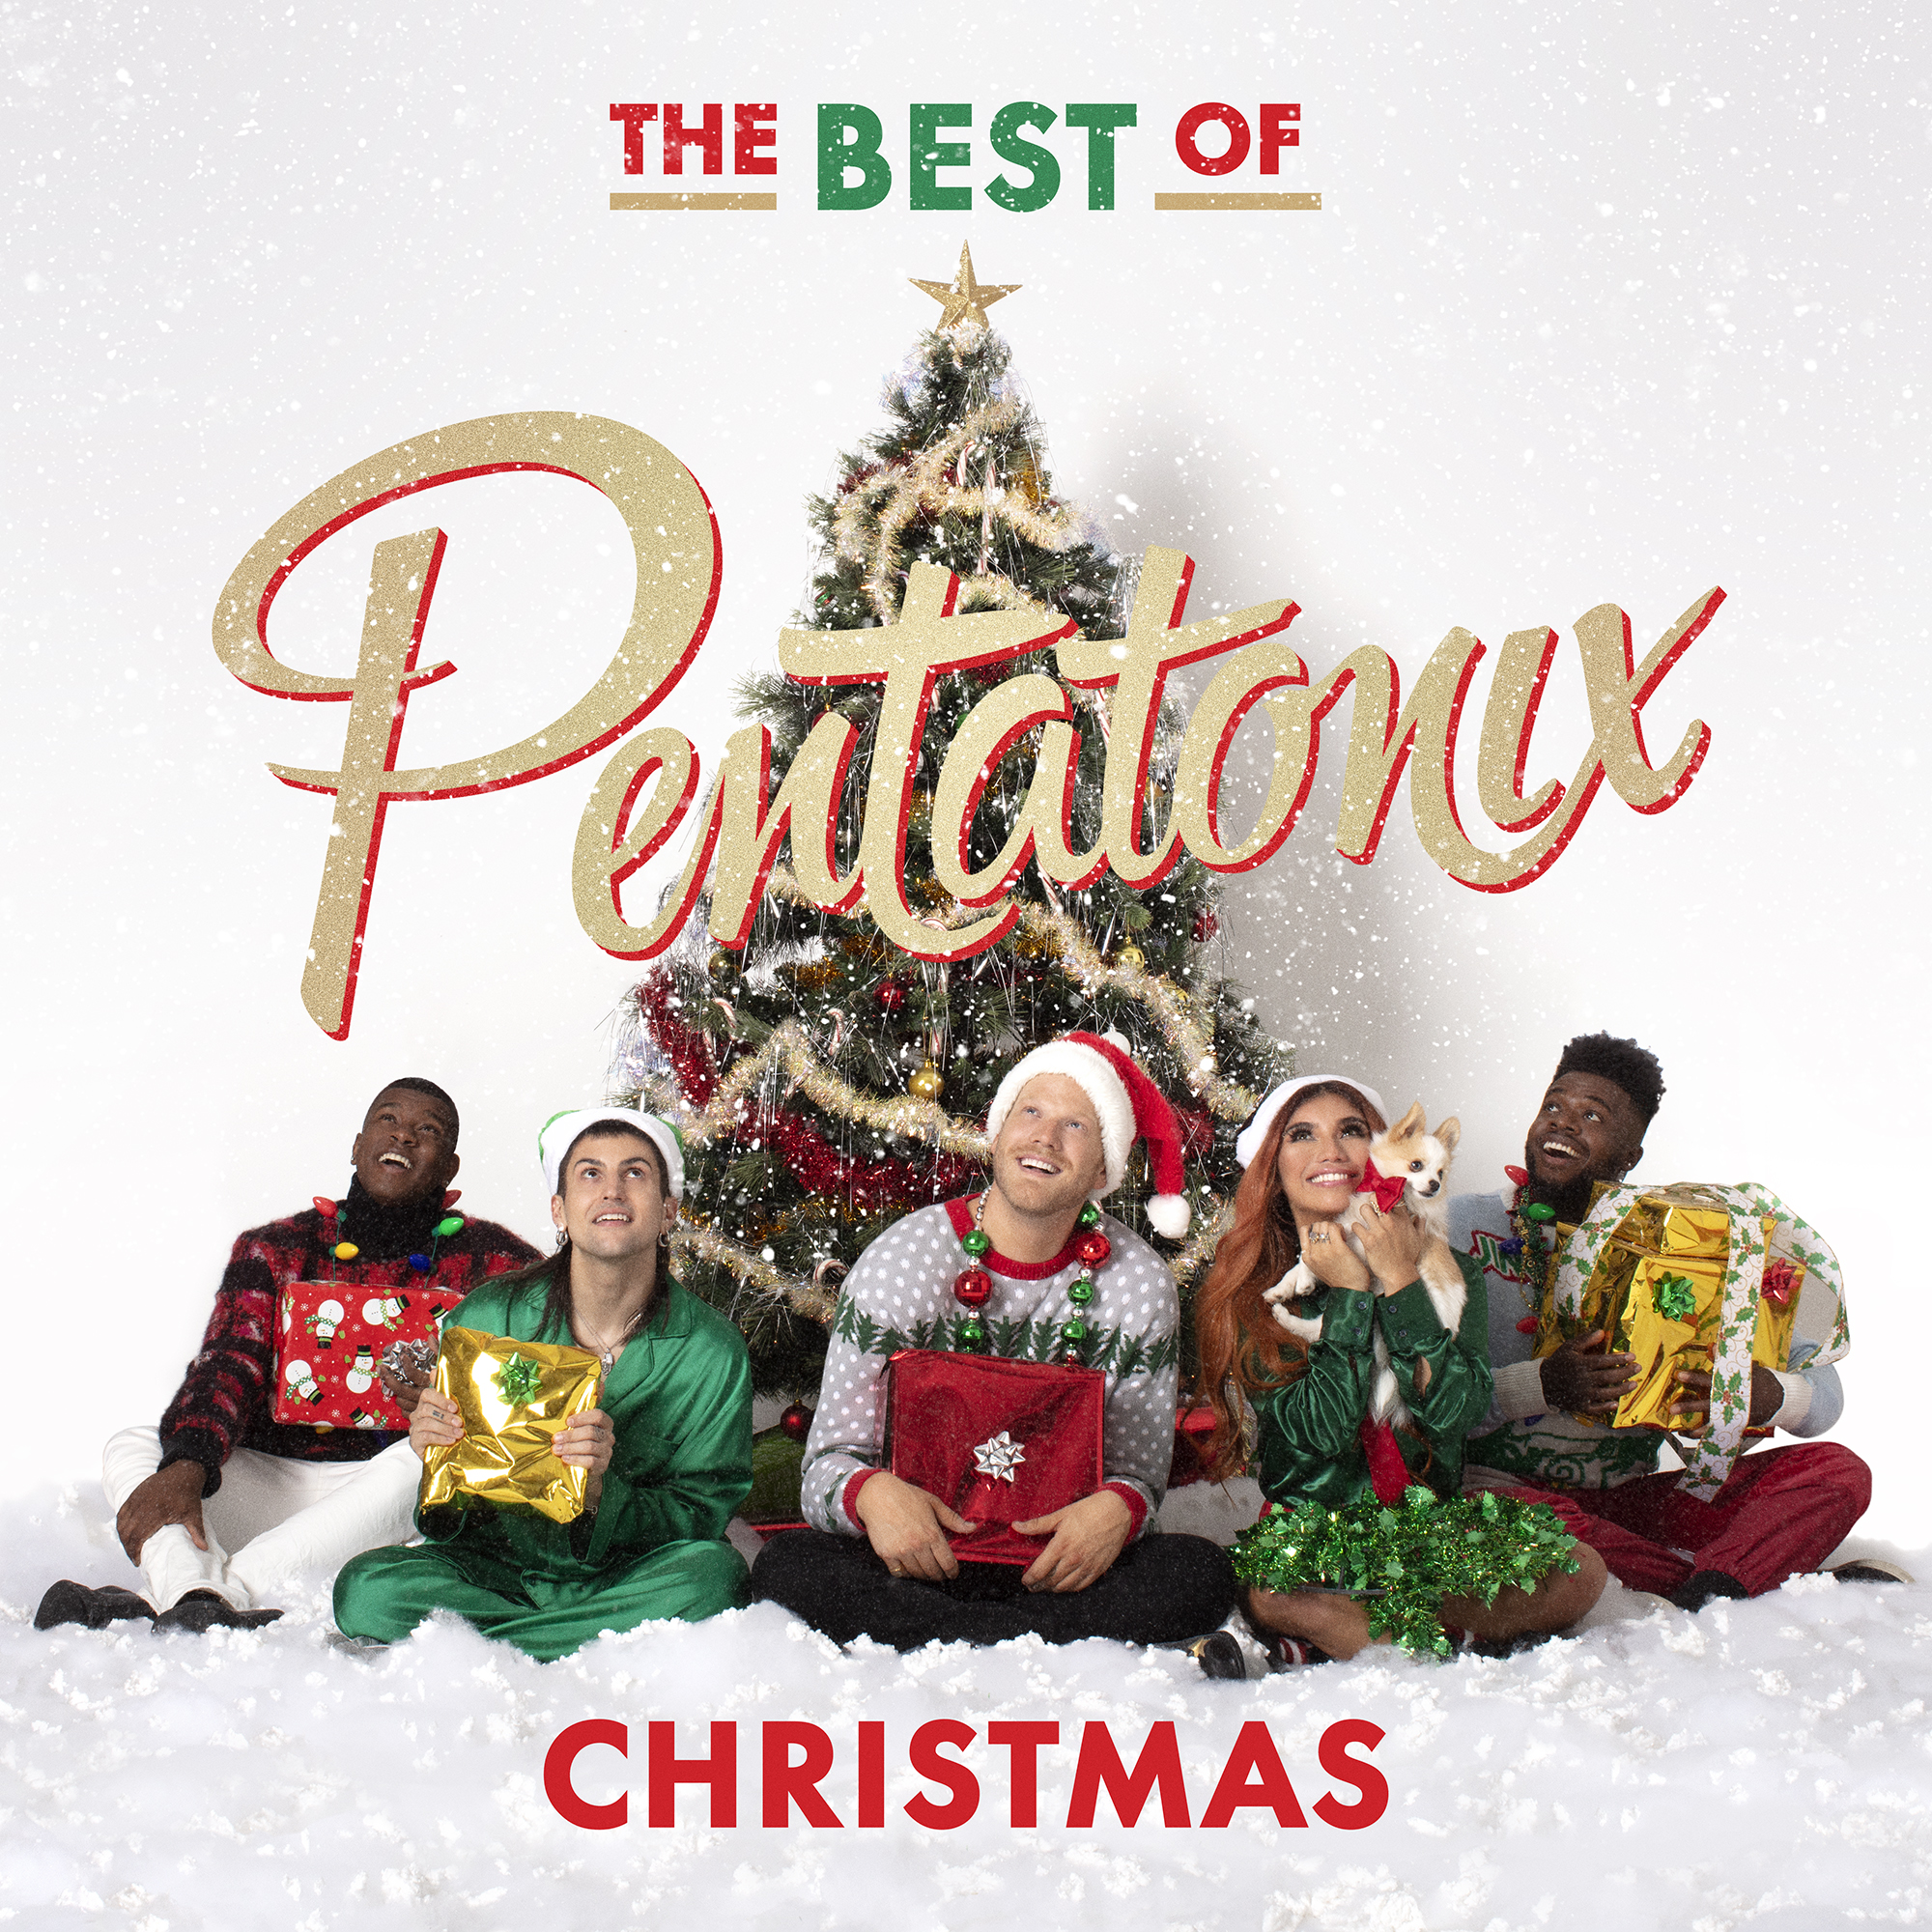 THE BEST OF PENTATONIX CHRISTMAS - OUR GREATEST HITS HOLIDAY ALBUM IS OUT THIS OCTOBER!